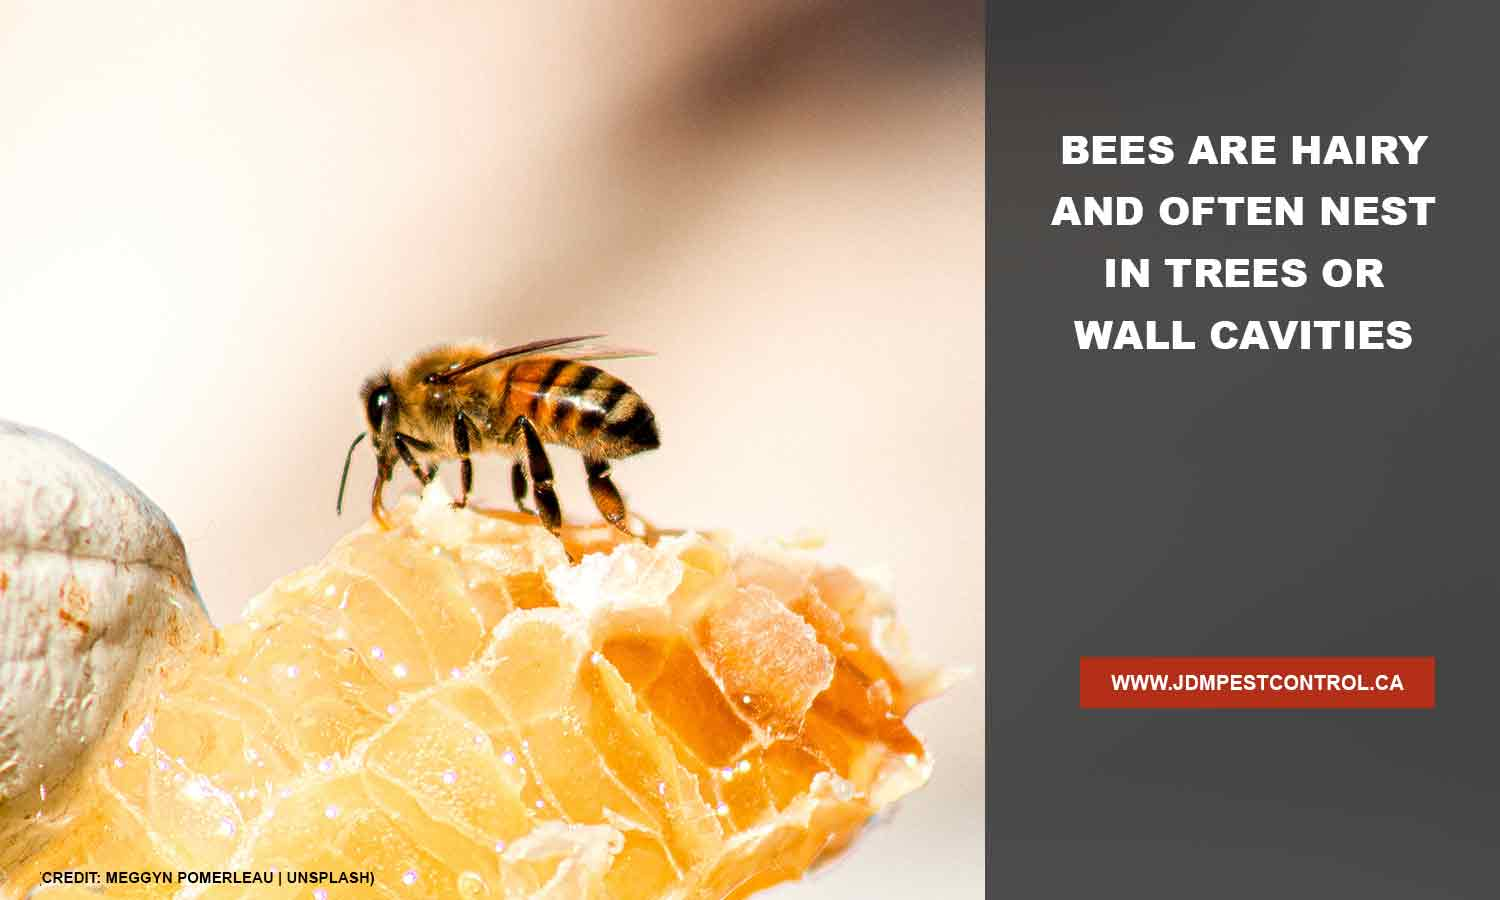 Bees are hairy and often nest in trees or wall cavities